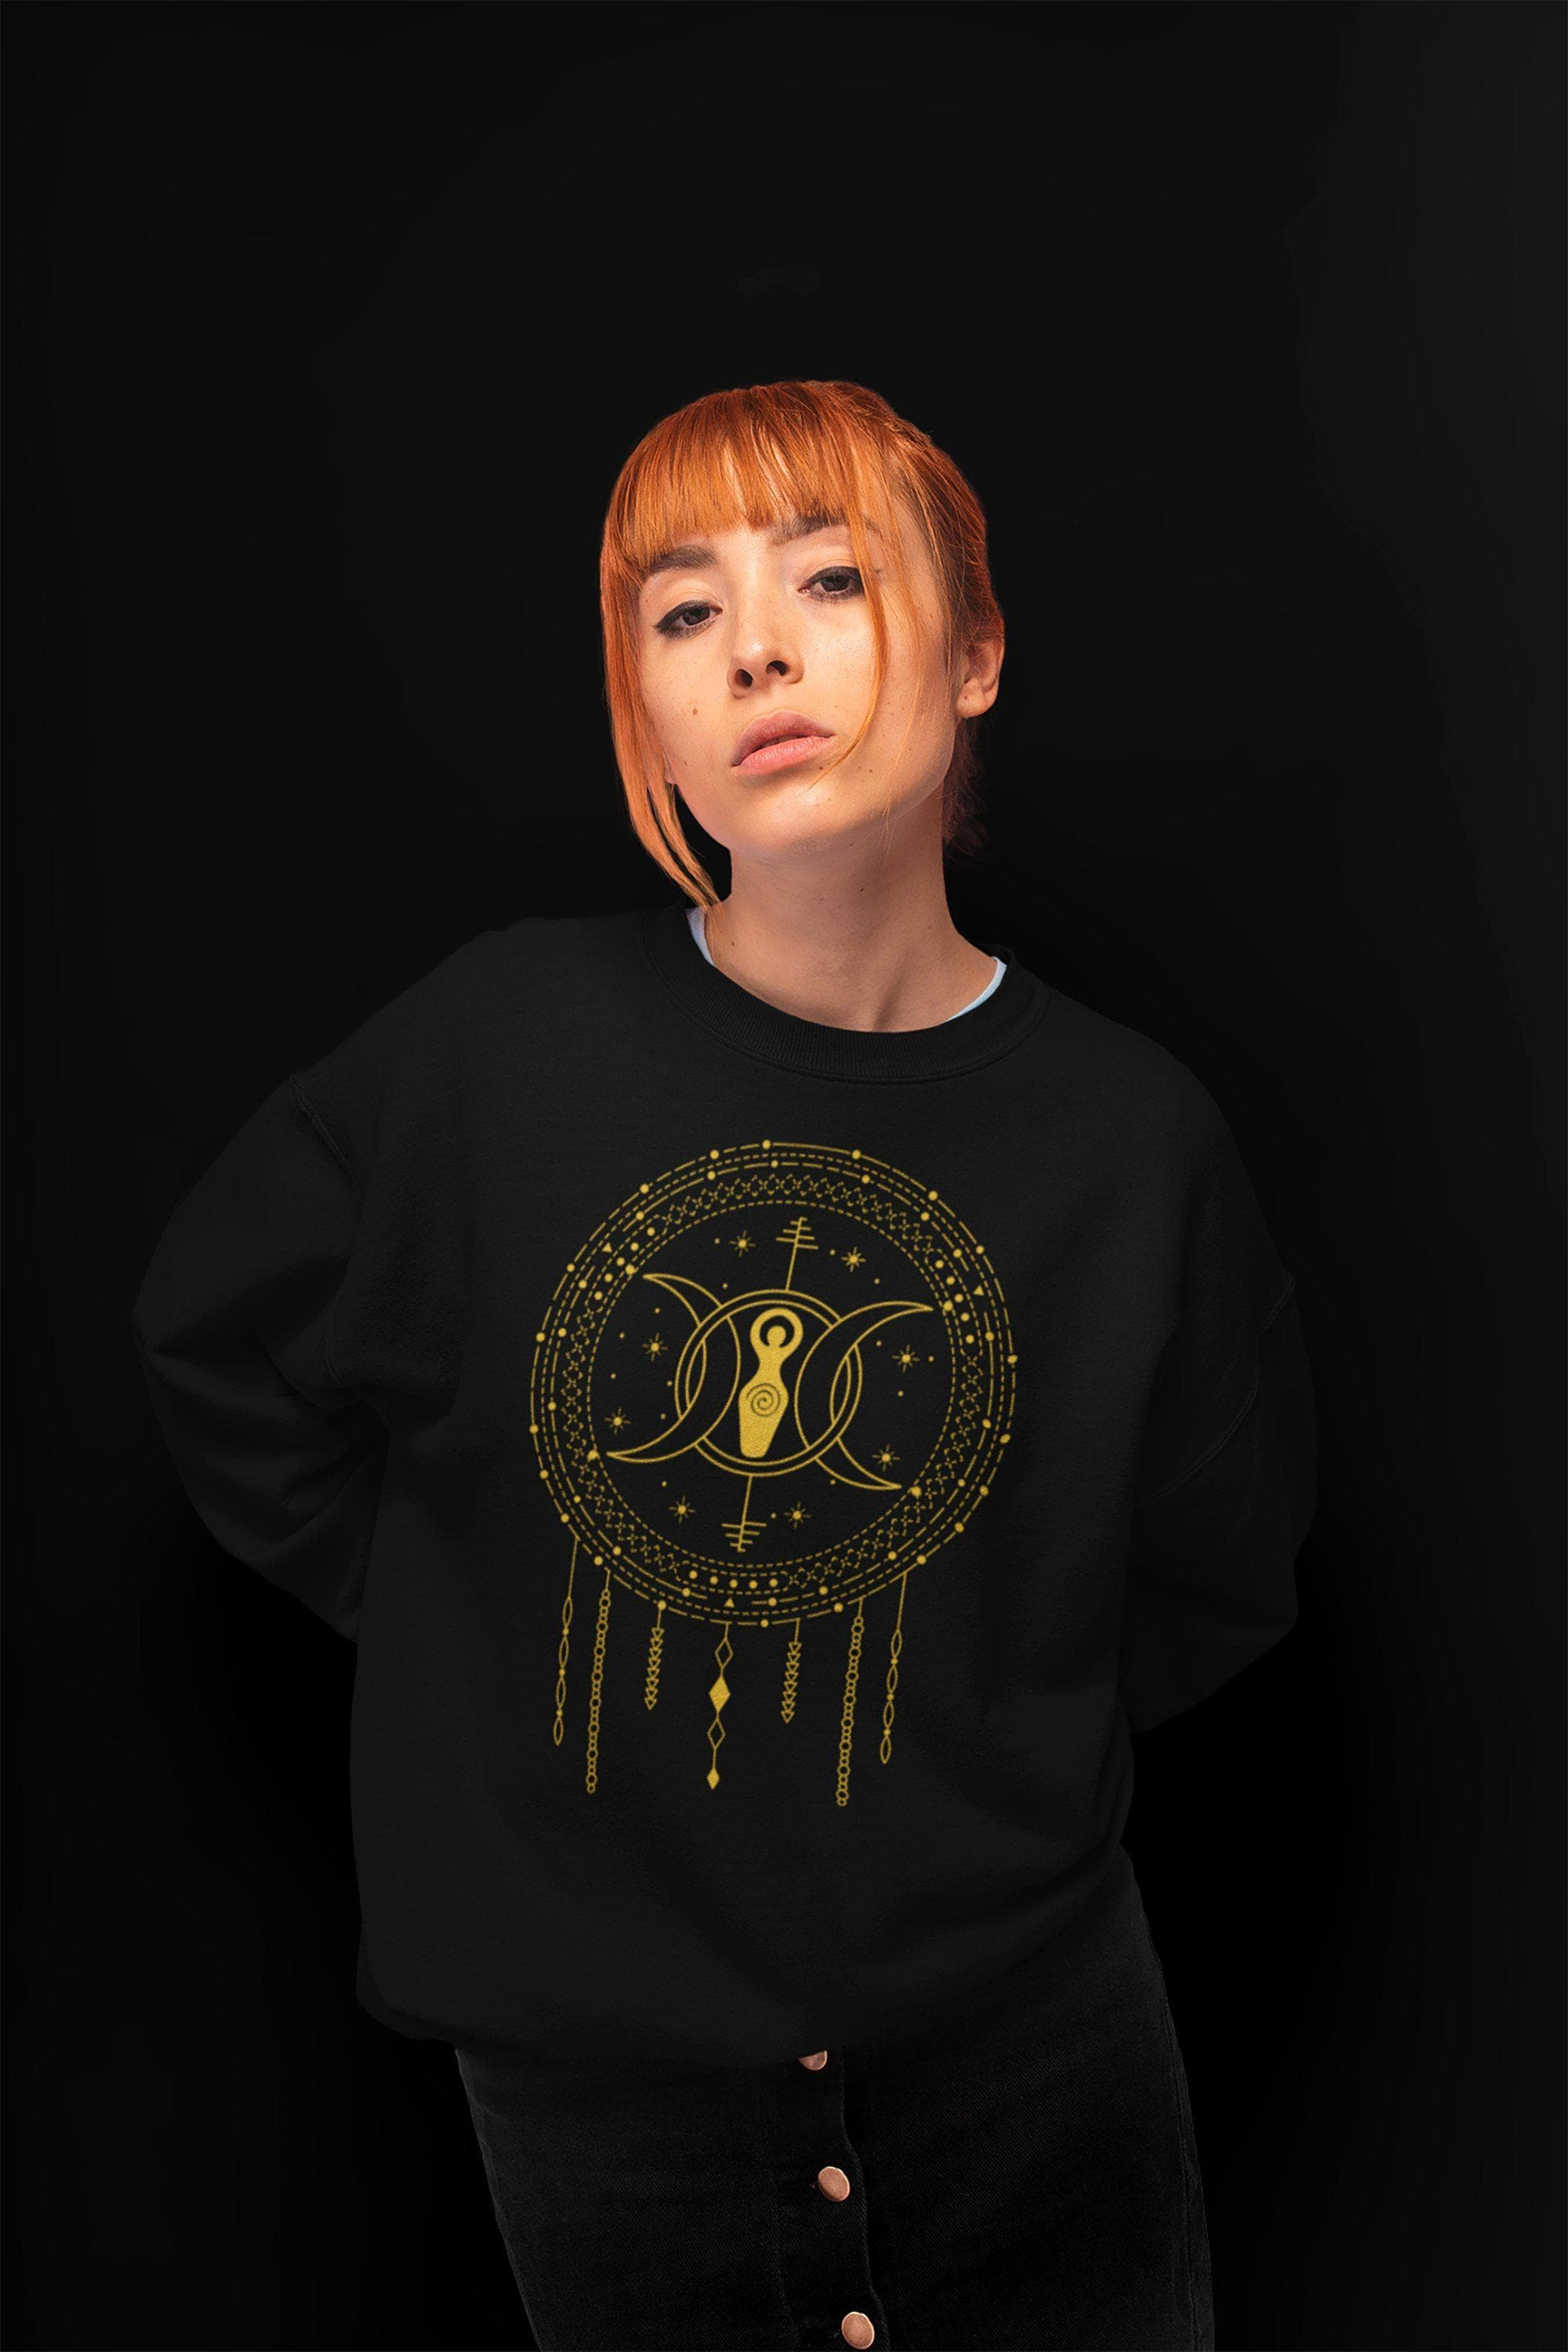 Wiccan Triple Moon Goddess Unisex Heavy Blend Crewneck Sweatshirt Ancient Treasures Ancientreasures Viking Odin Thor Mjolnir Celtic Ancient Egypt Norse Norse Mythology